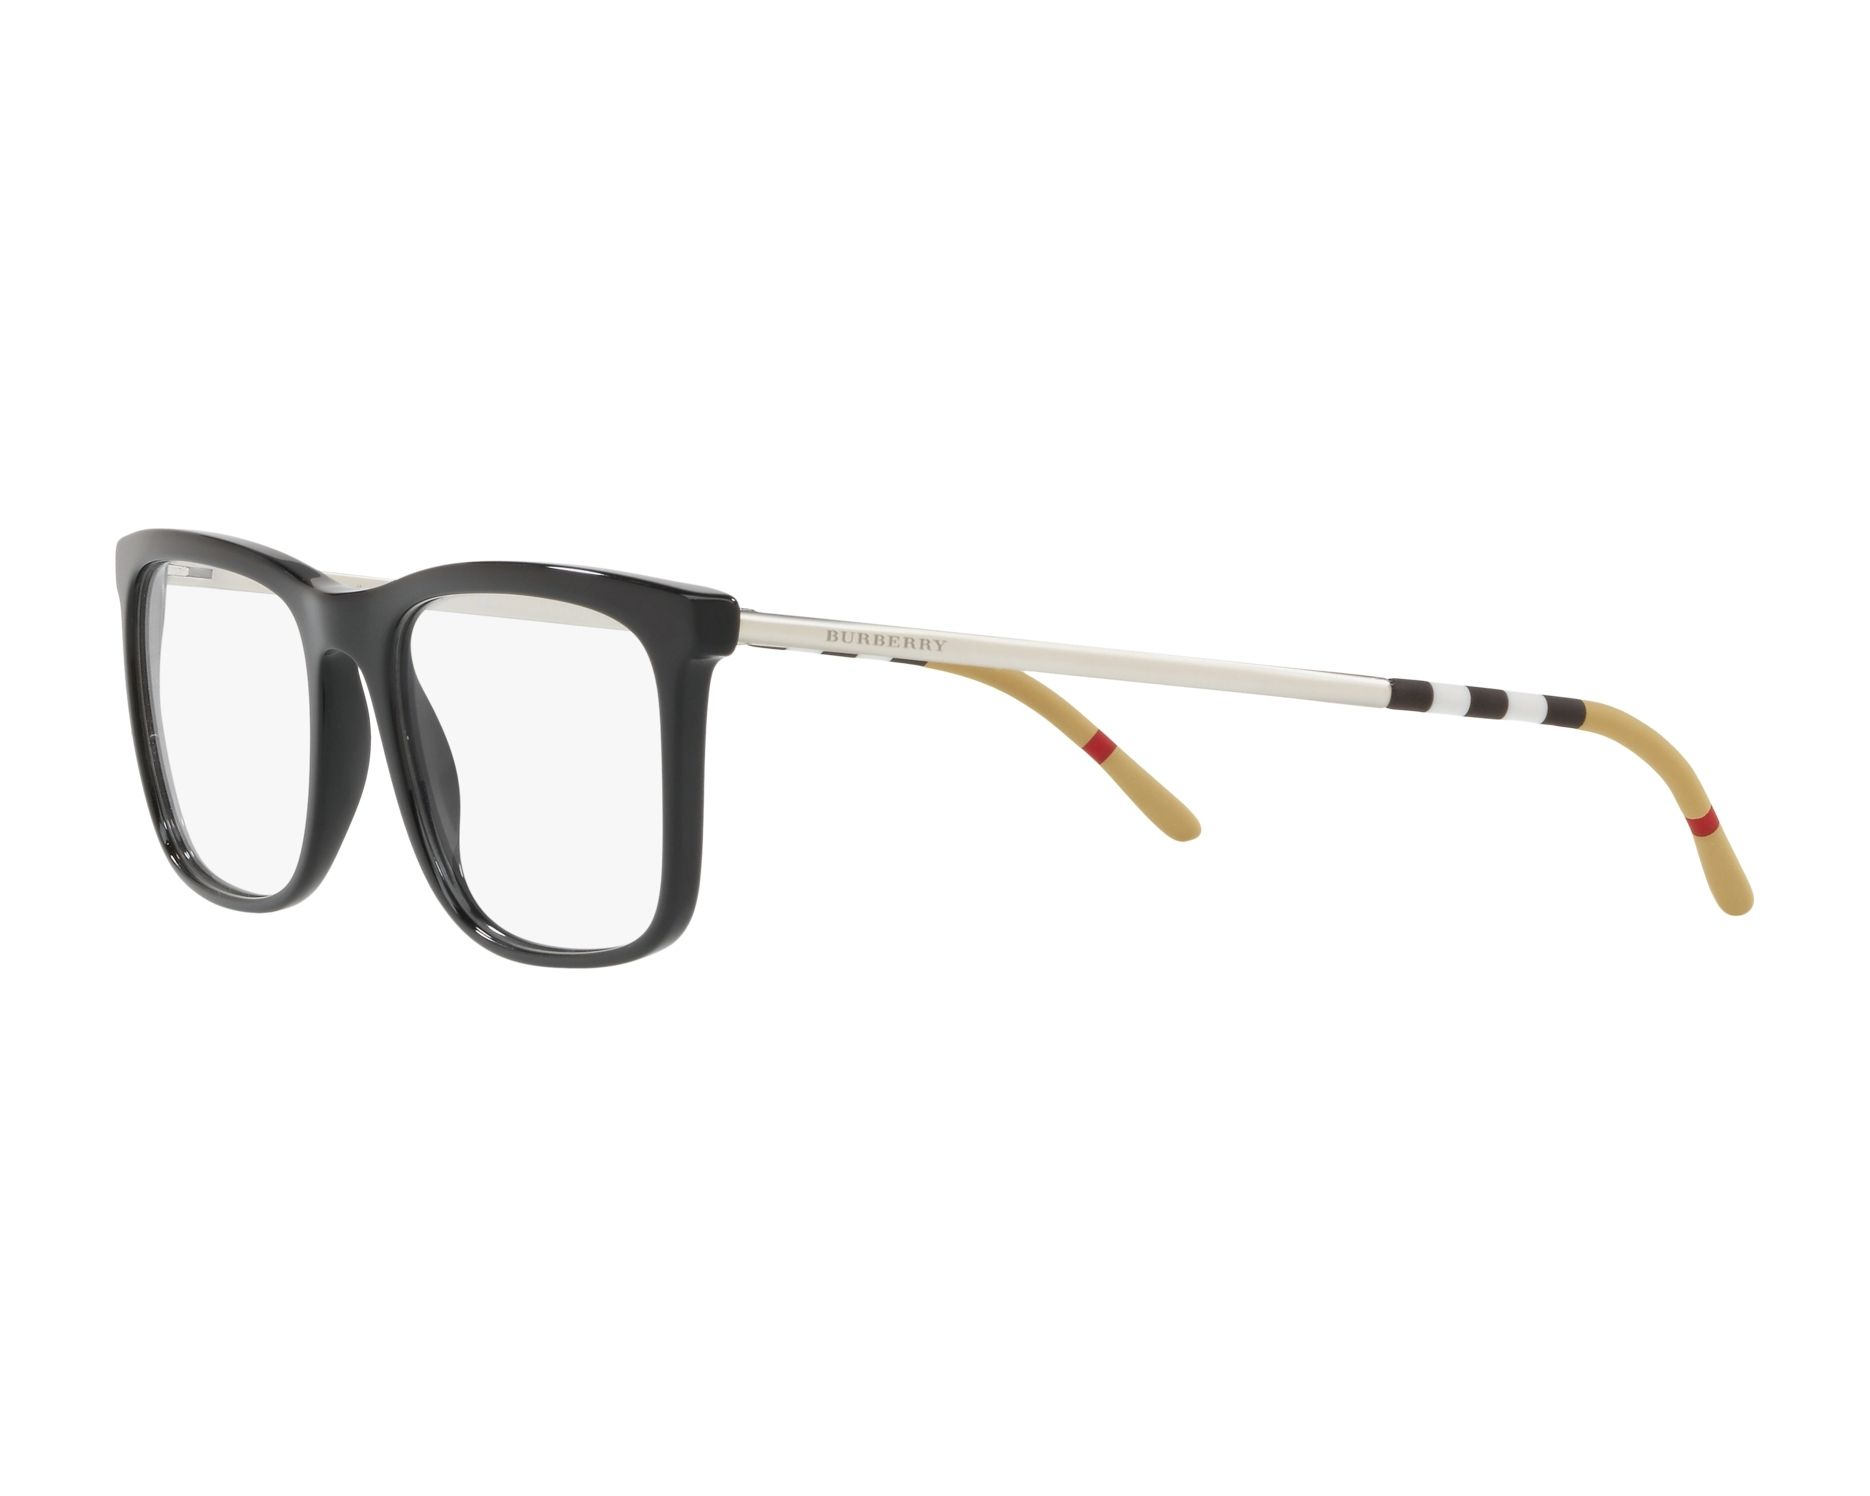 eyeglasses Burberry BE-2274 3001 55-18 Black Silver 360 degree view 3